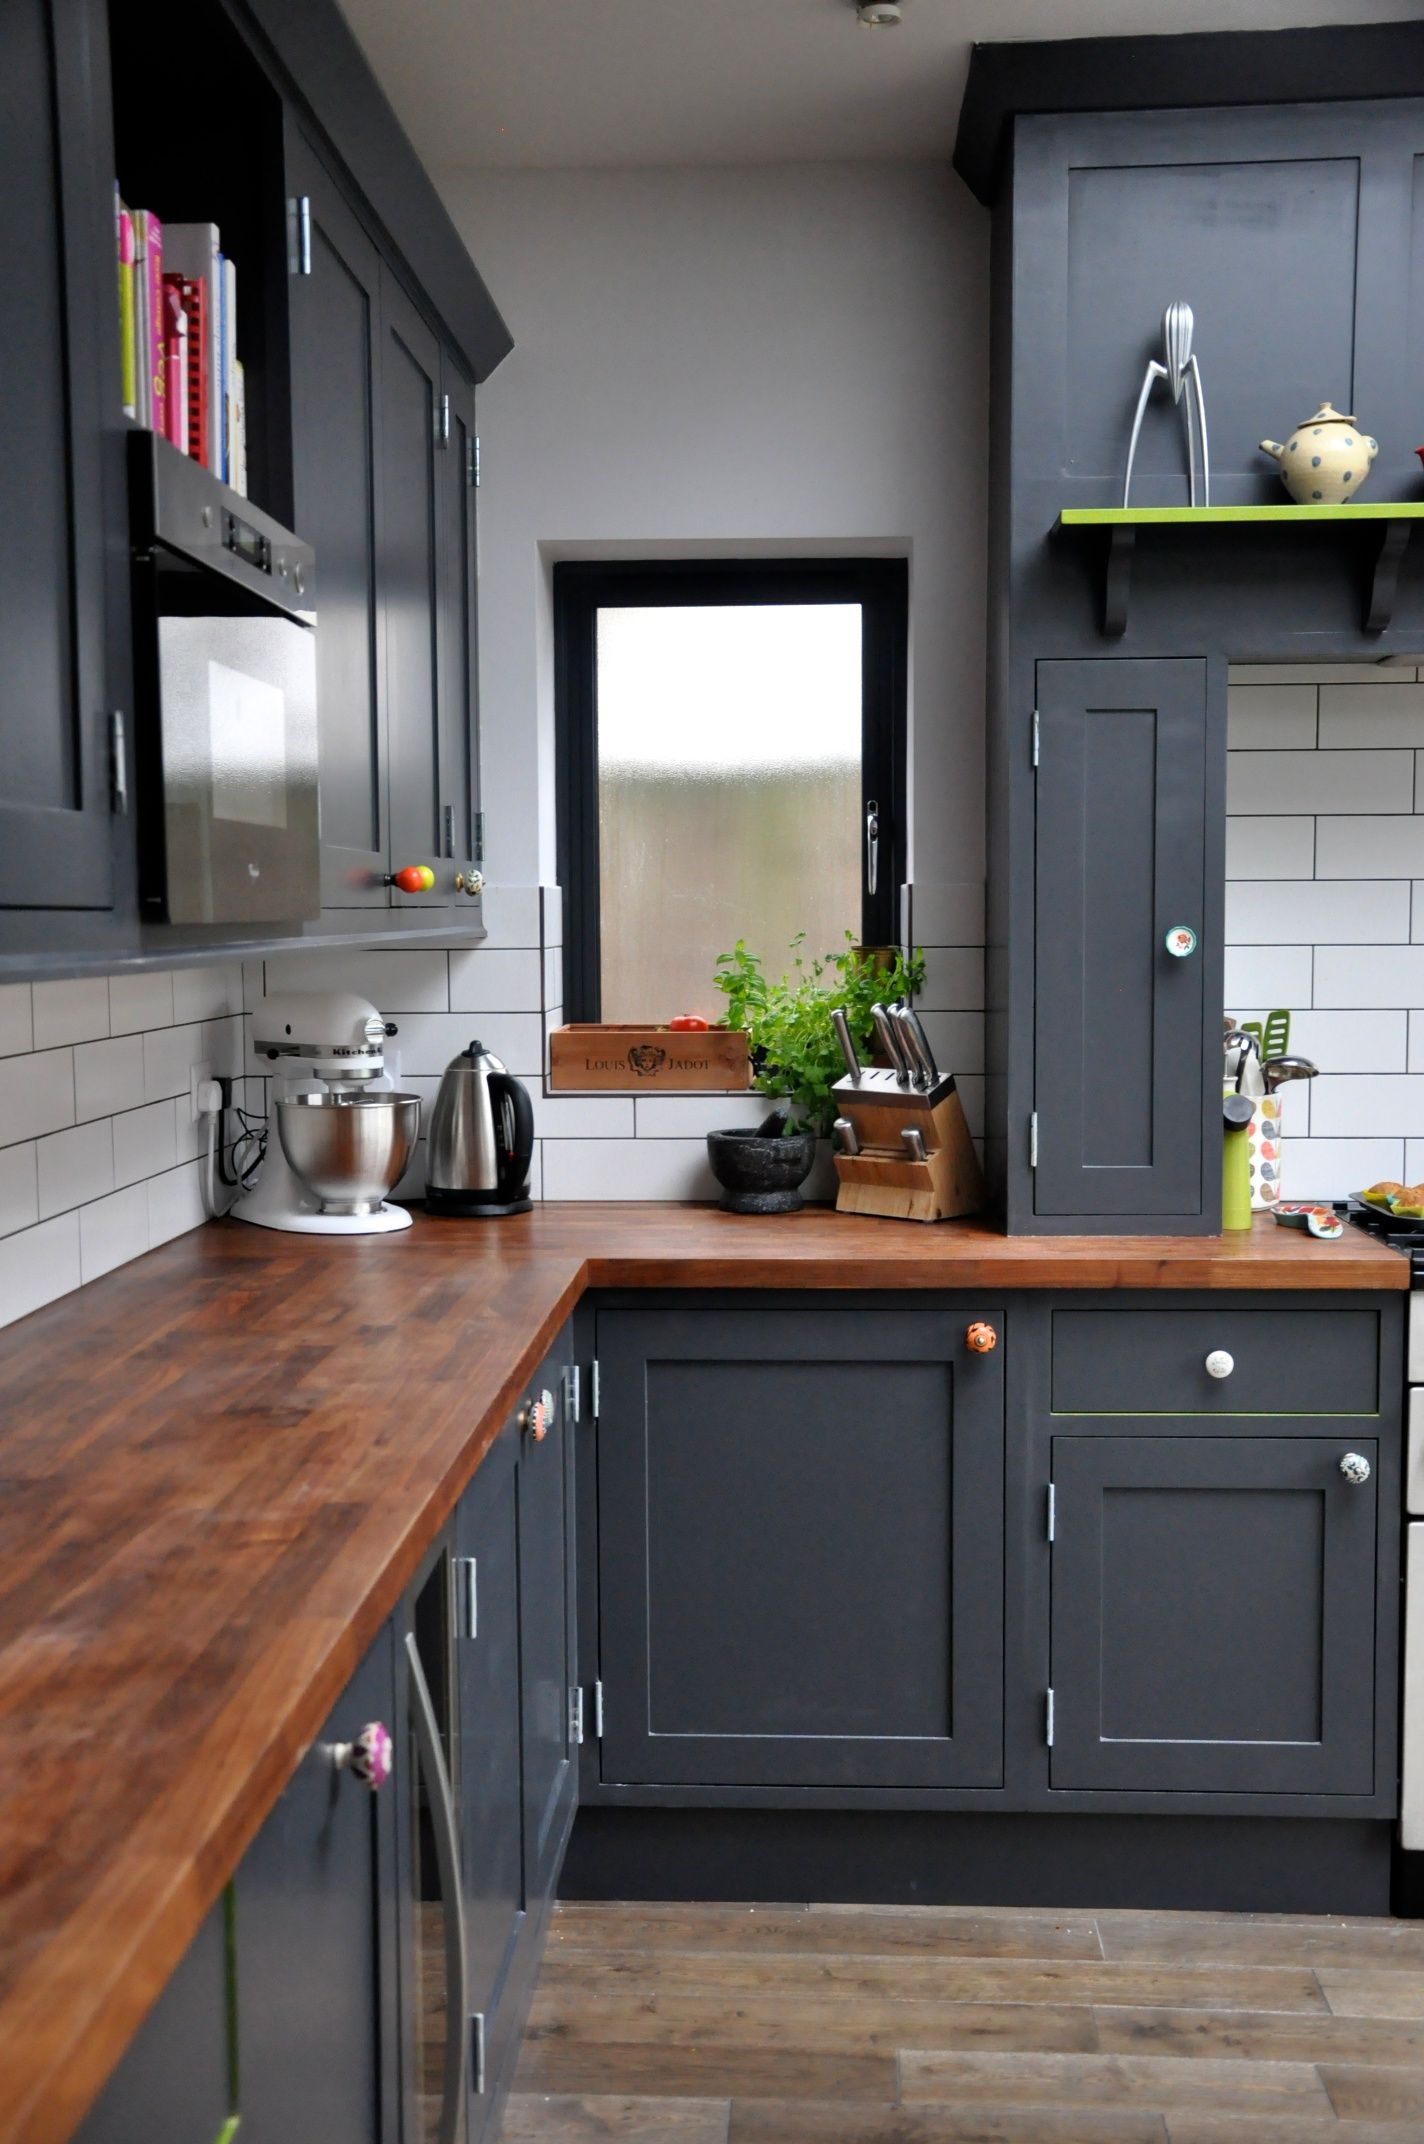 Wooden Counters Can Not Only Look Very Chic But Will Also Save You - Brown and grey kitchen designs